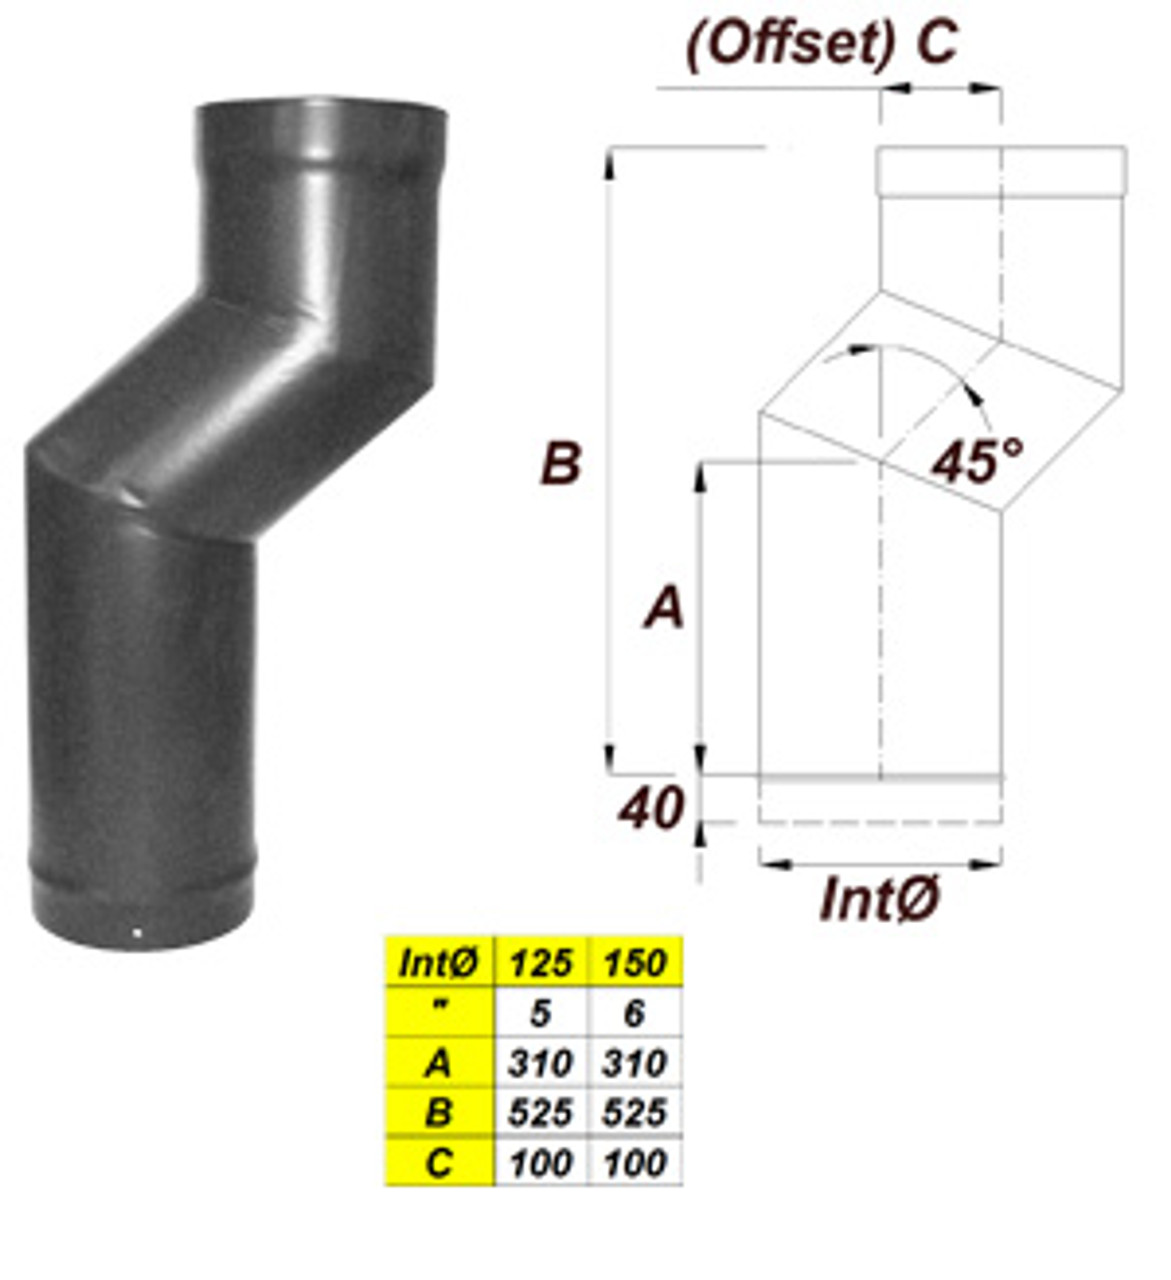 1 Piece Stove Offset (100mm)